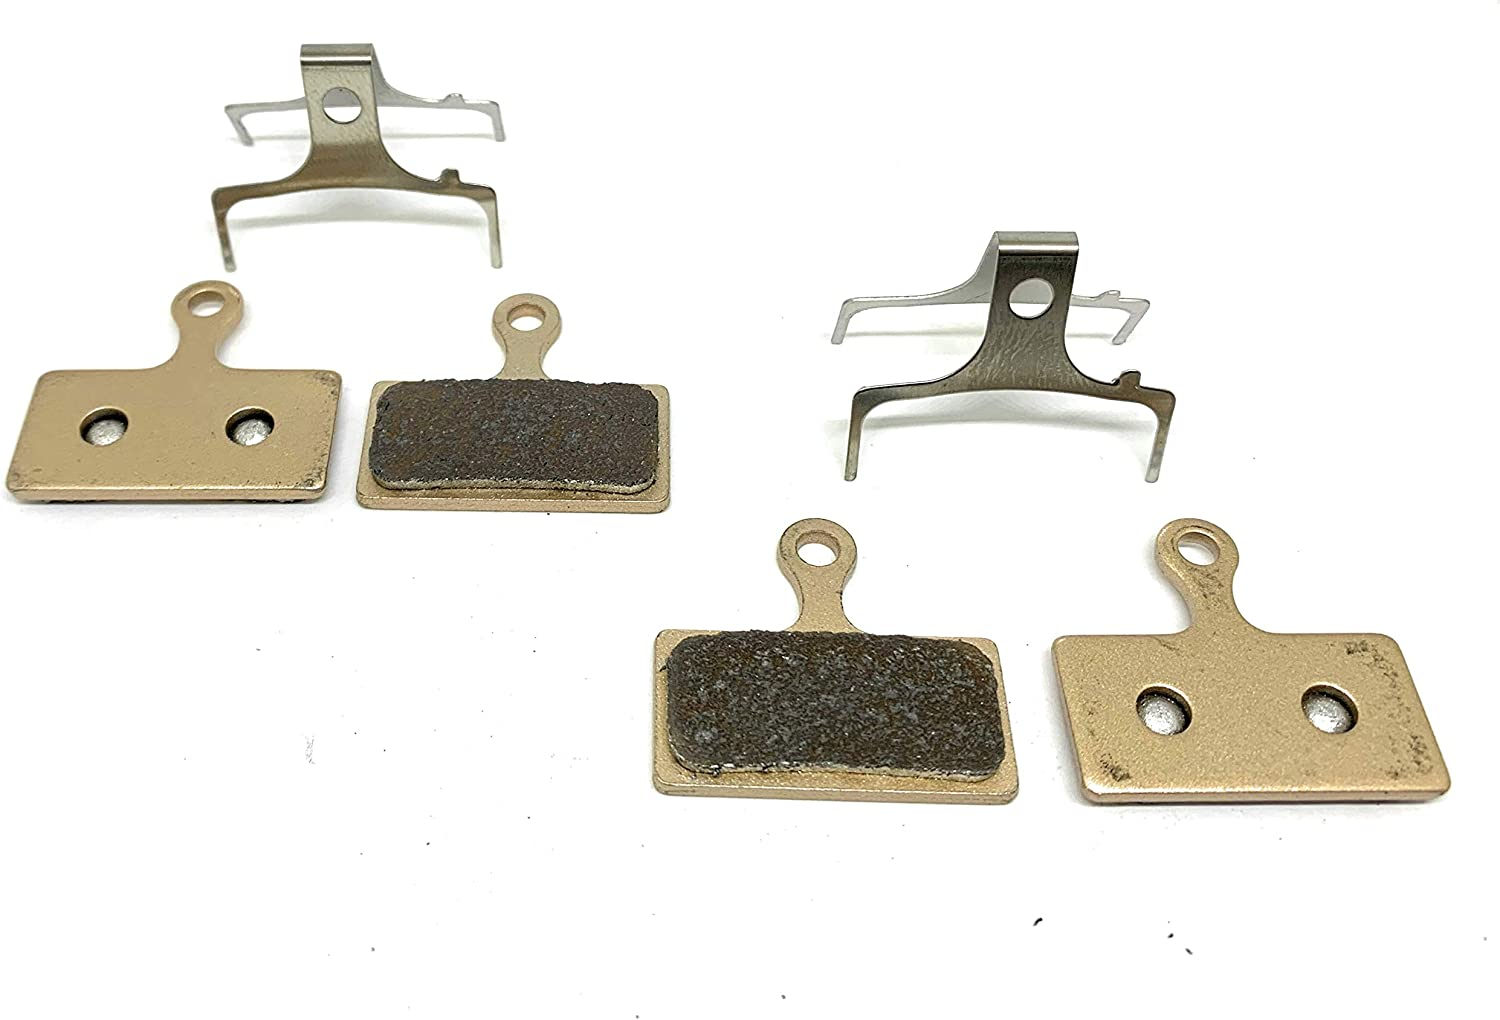 Bike Ranking TOP3 brake pads organic sintered for M7 Deore Shimano G02A XT BR Max 74% OFF